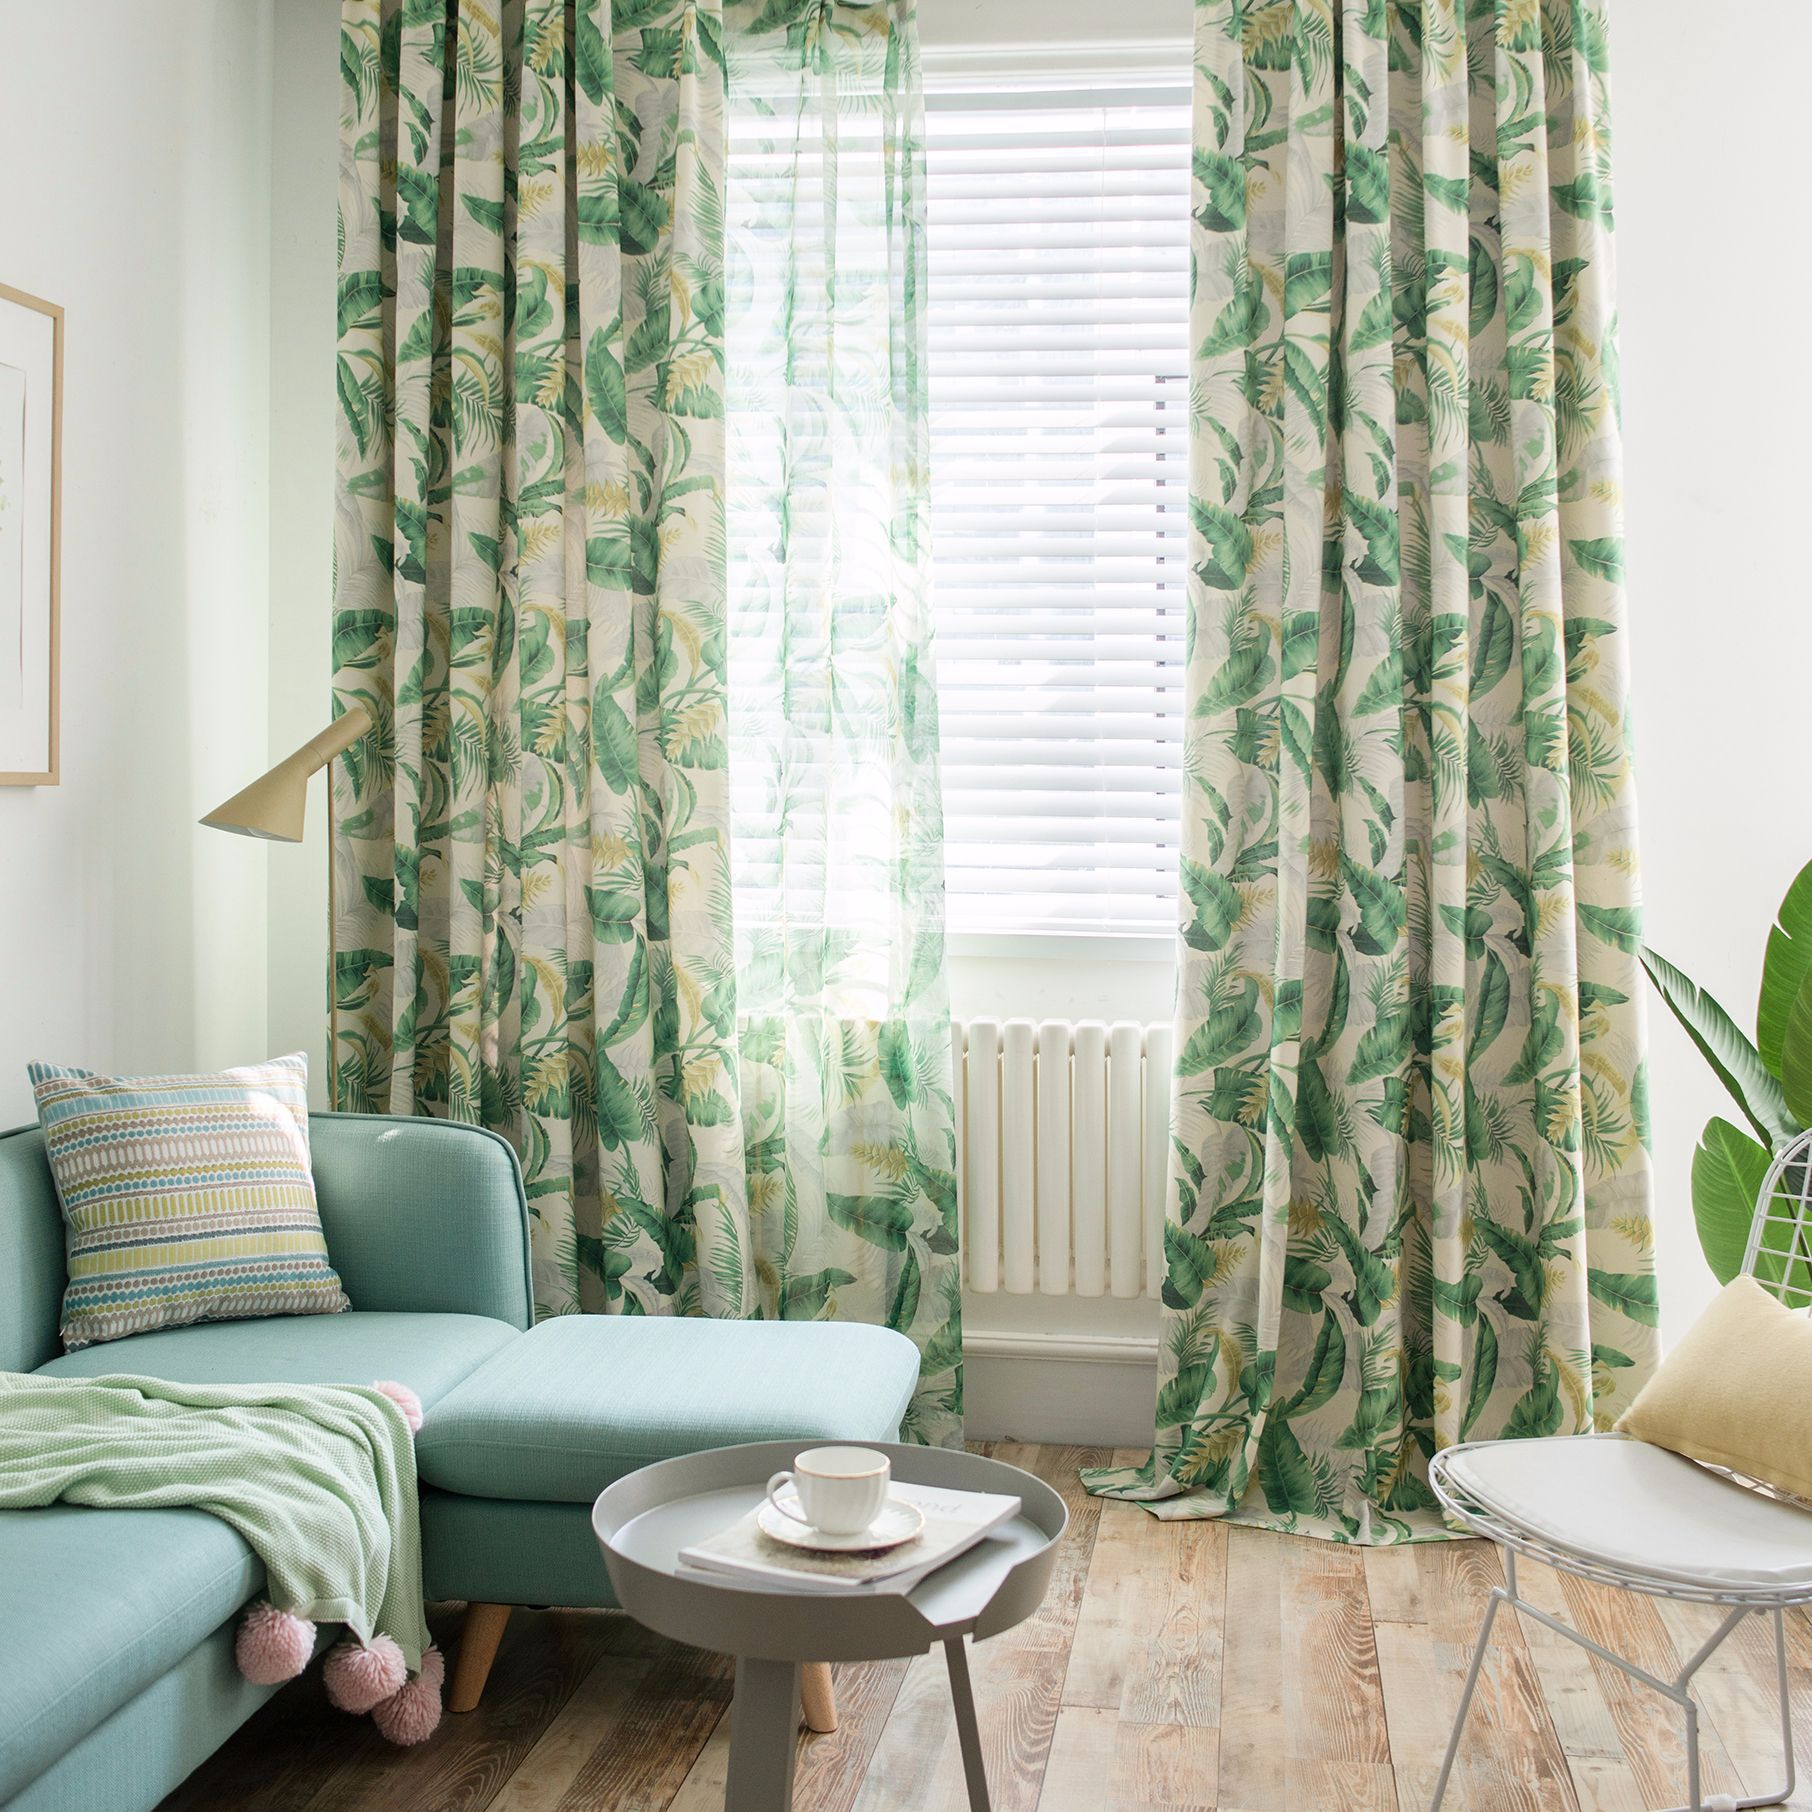 Us 17 8 11 Off Modern Curtains For Bedroom Living Room Leaf Printed Green Brown Fashion Curtain Sheer Window Sreens Garden Fresh Tulle In Curtains